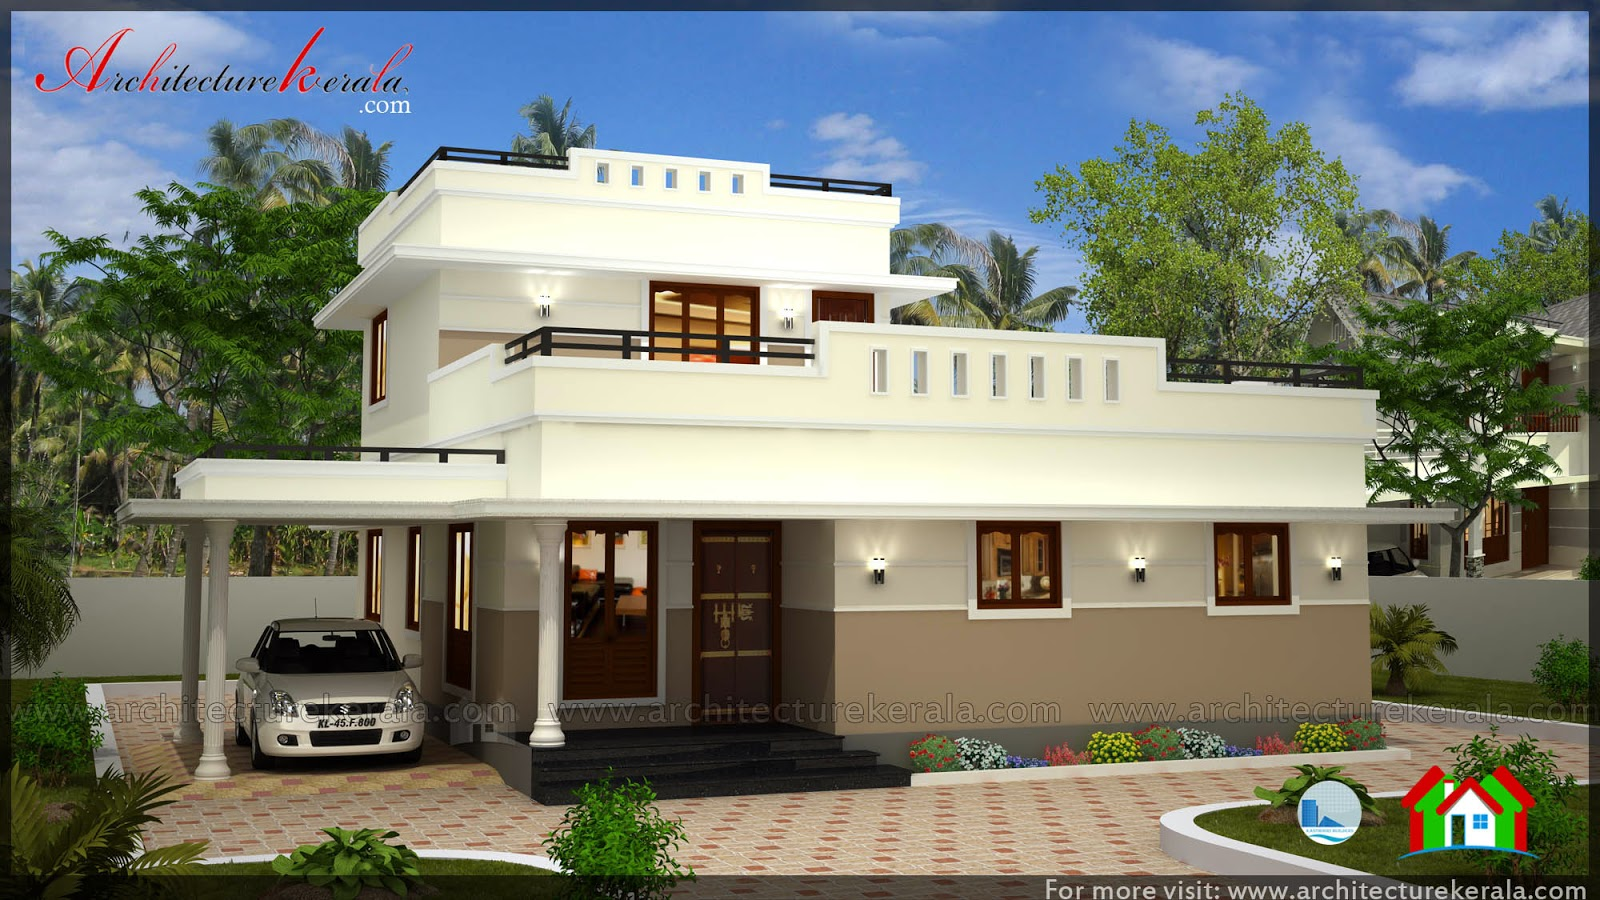 Low cost 3 bedroom kerala house plan with elevation free for Kerala two bedroom house plans